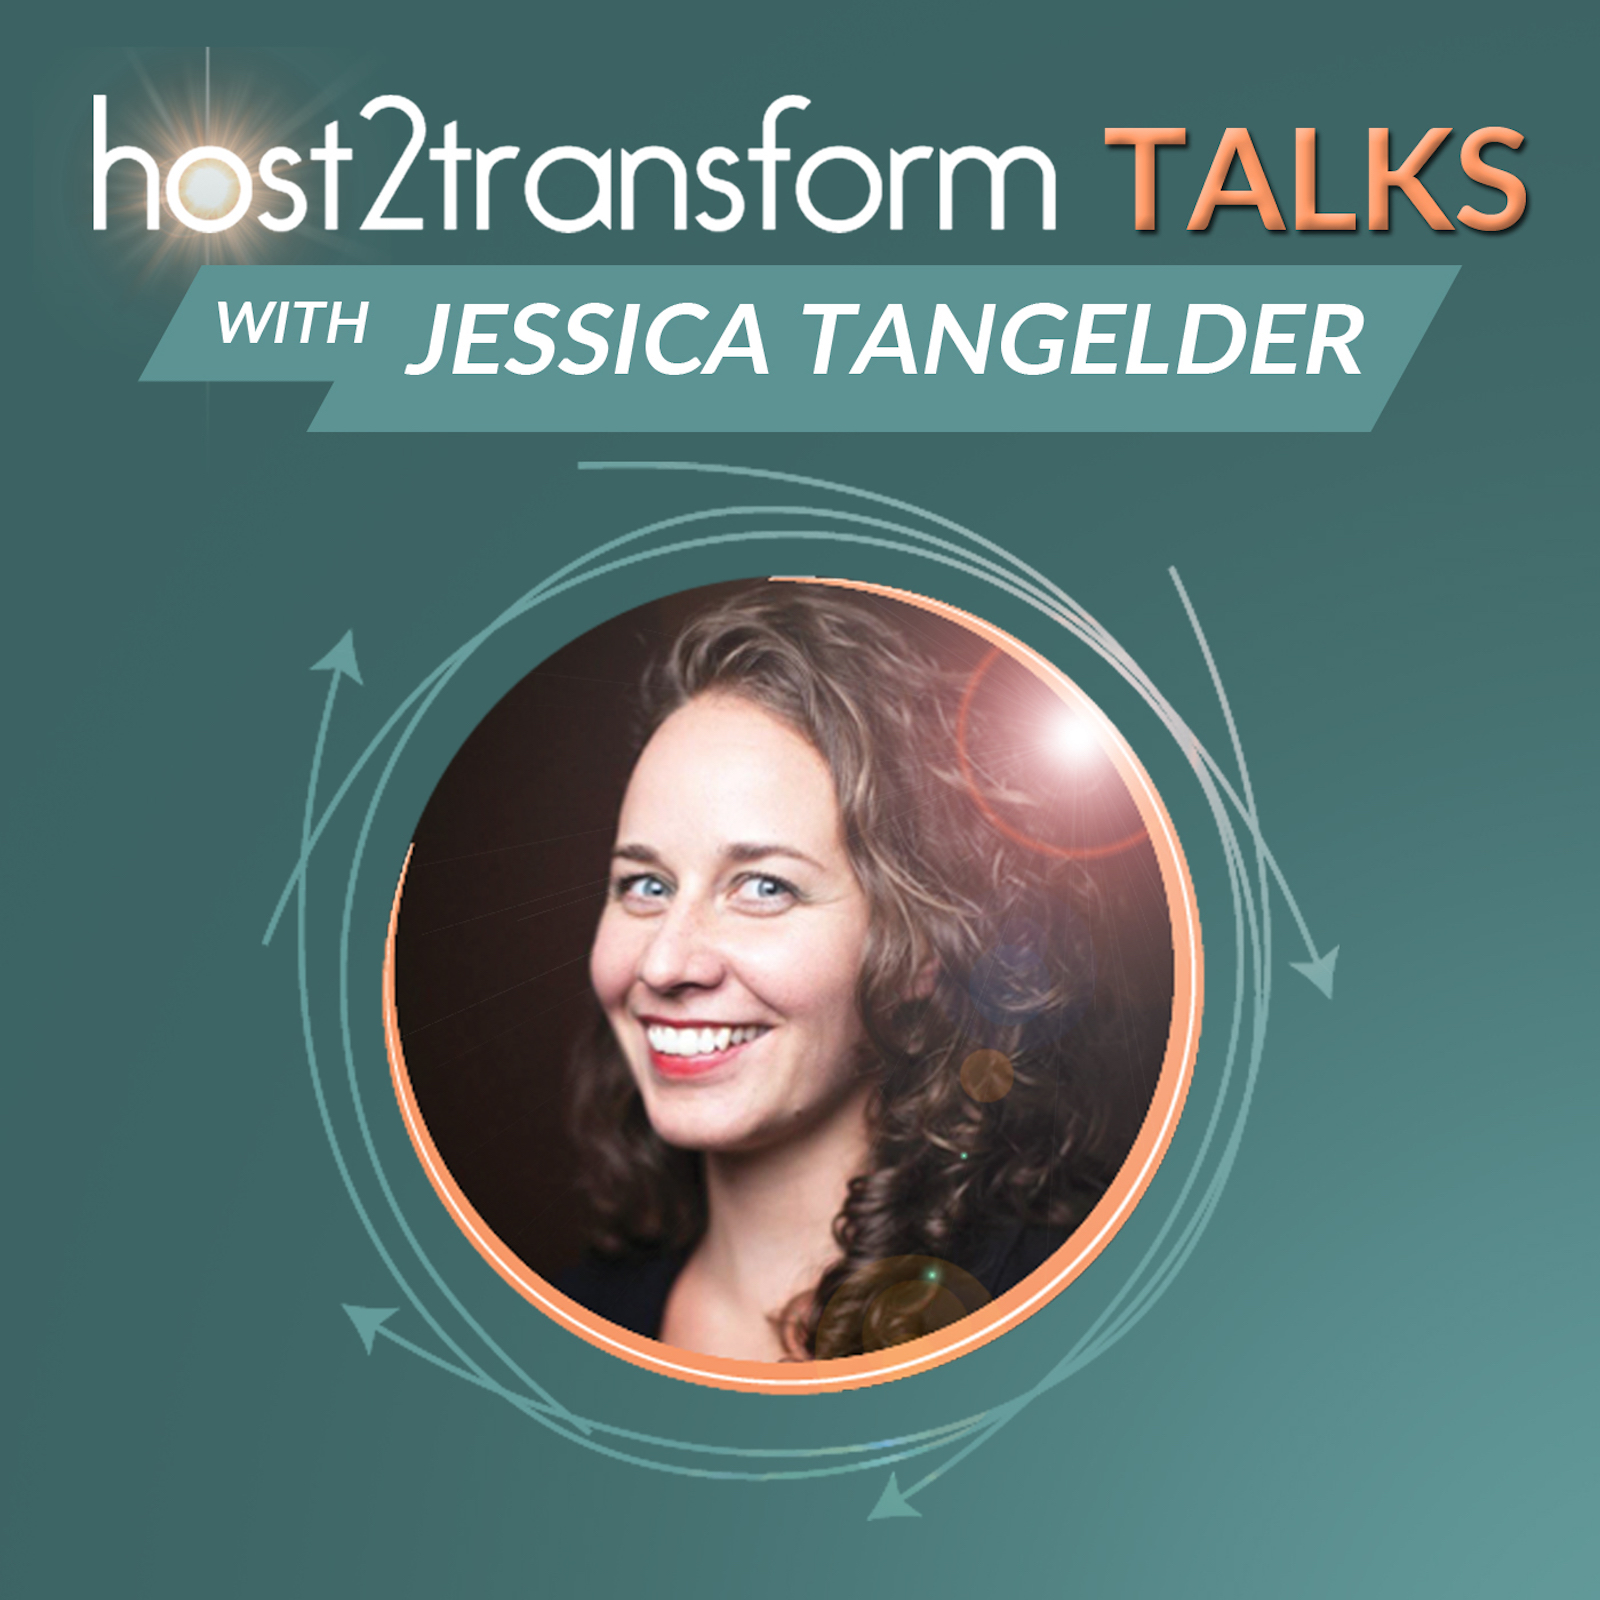 Host2Transform Talks